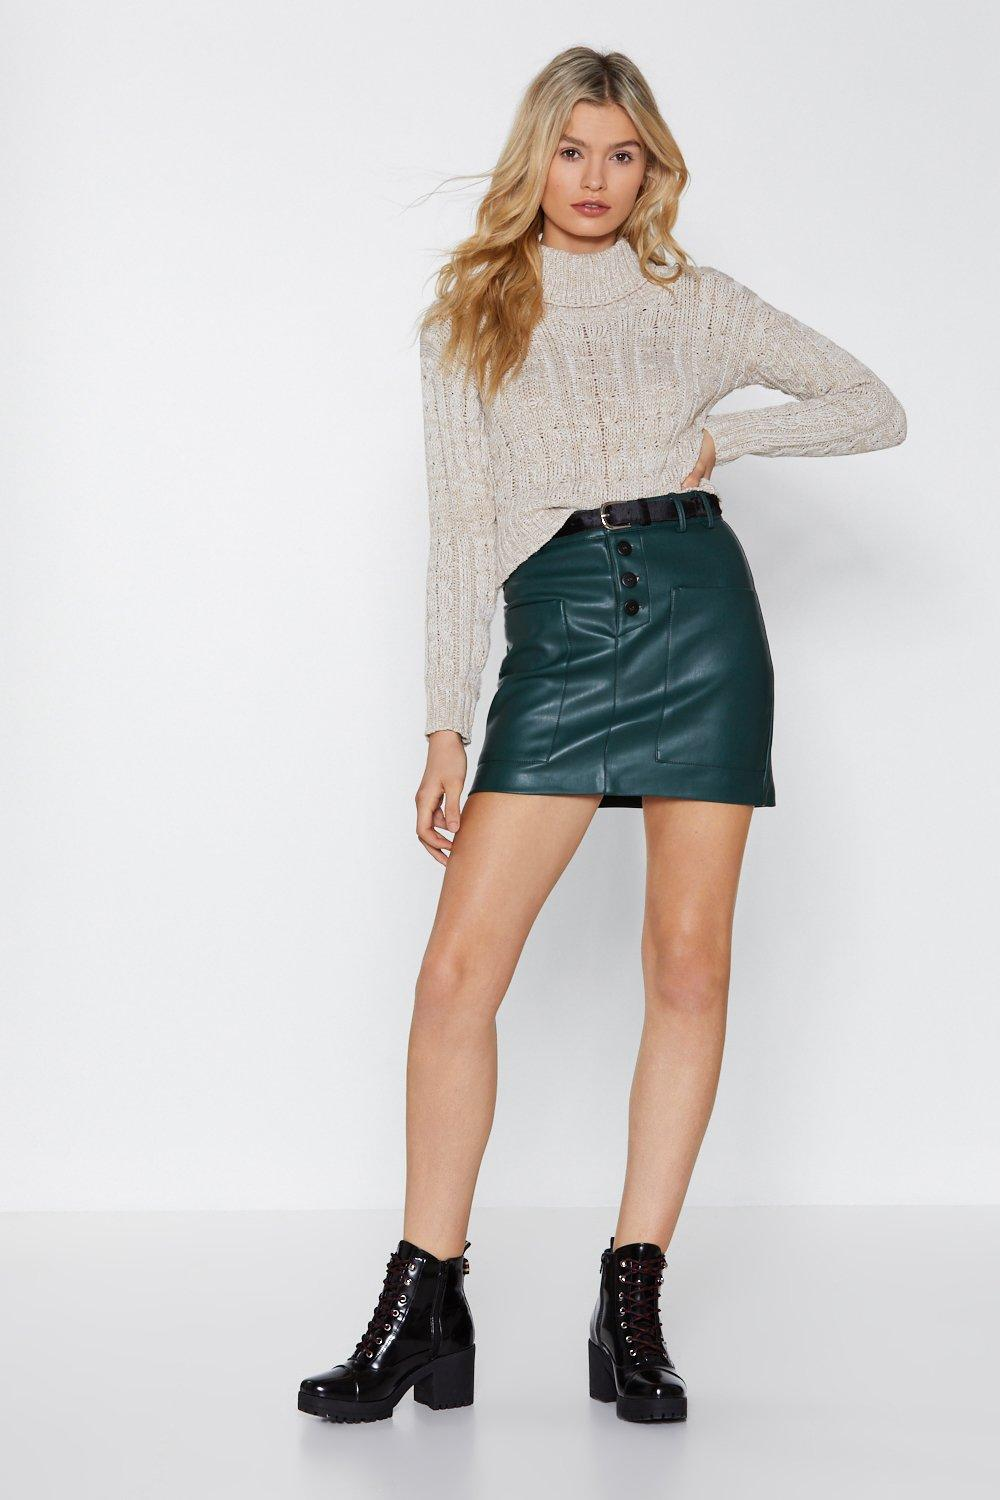 comfortable feel newest style best sale Pocket This Faux Leather Skirt | Shop Clothes at Nasty Gal!